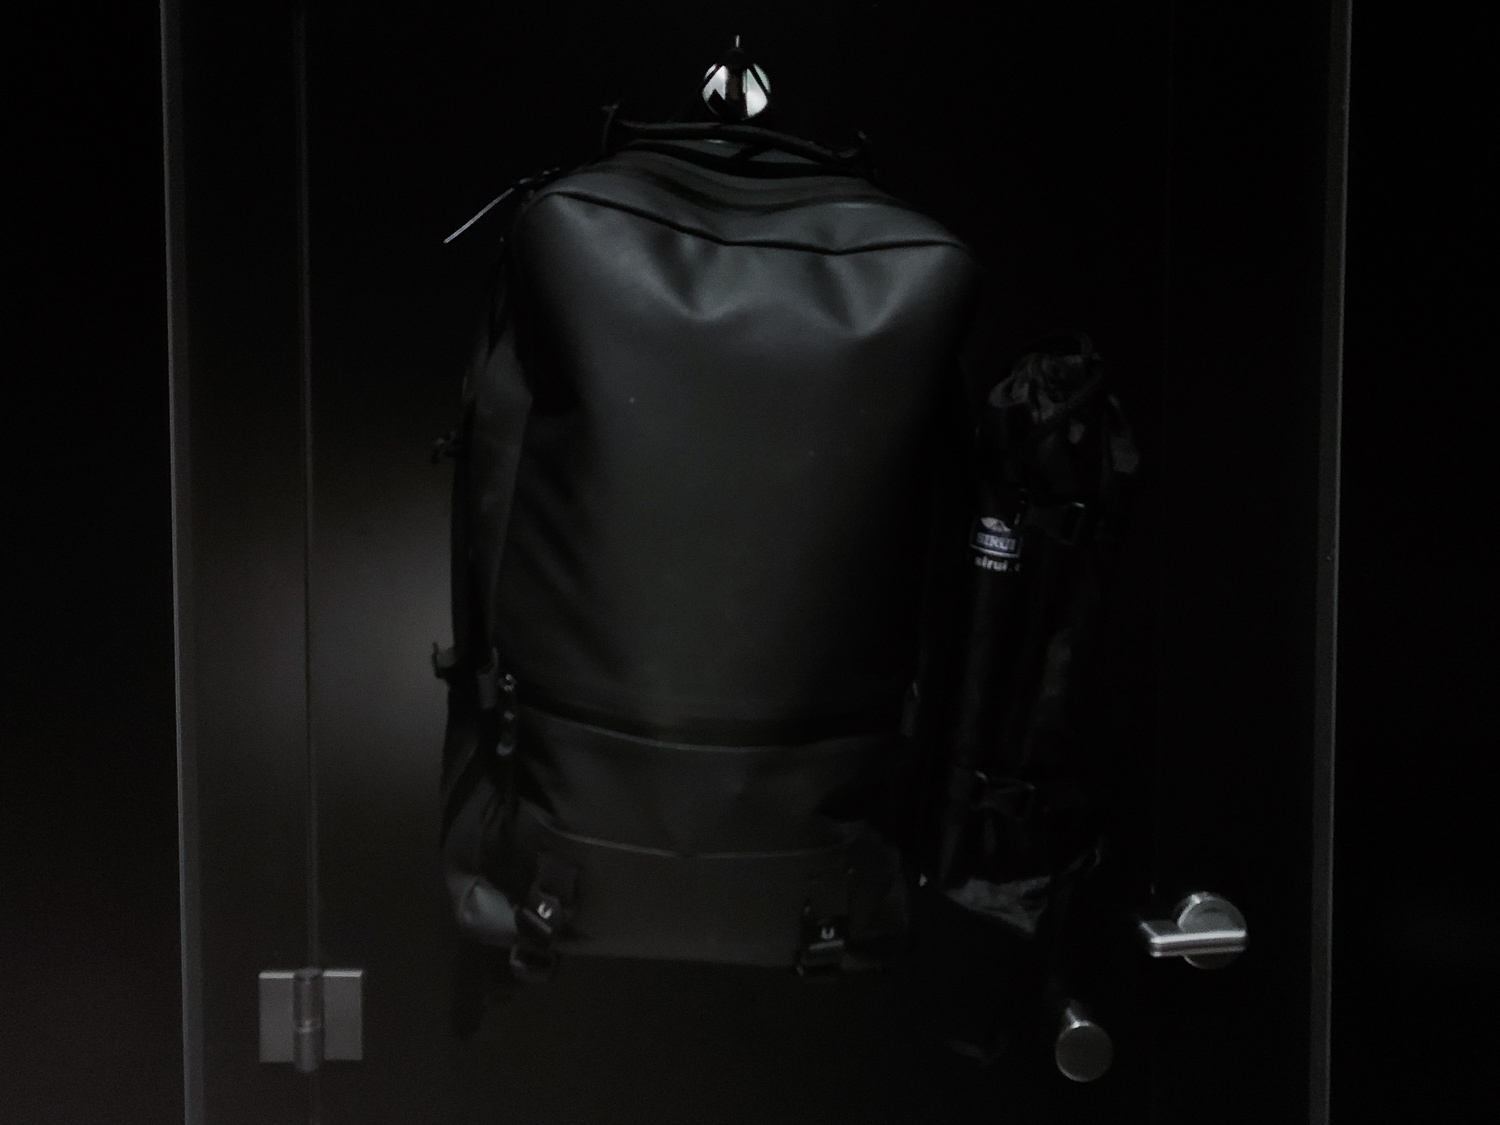 Even the tones are kept consistent on this black minimalist backpack.